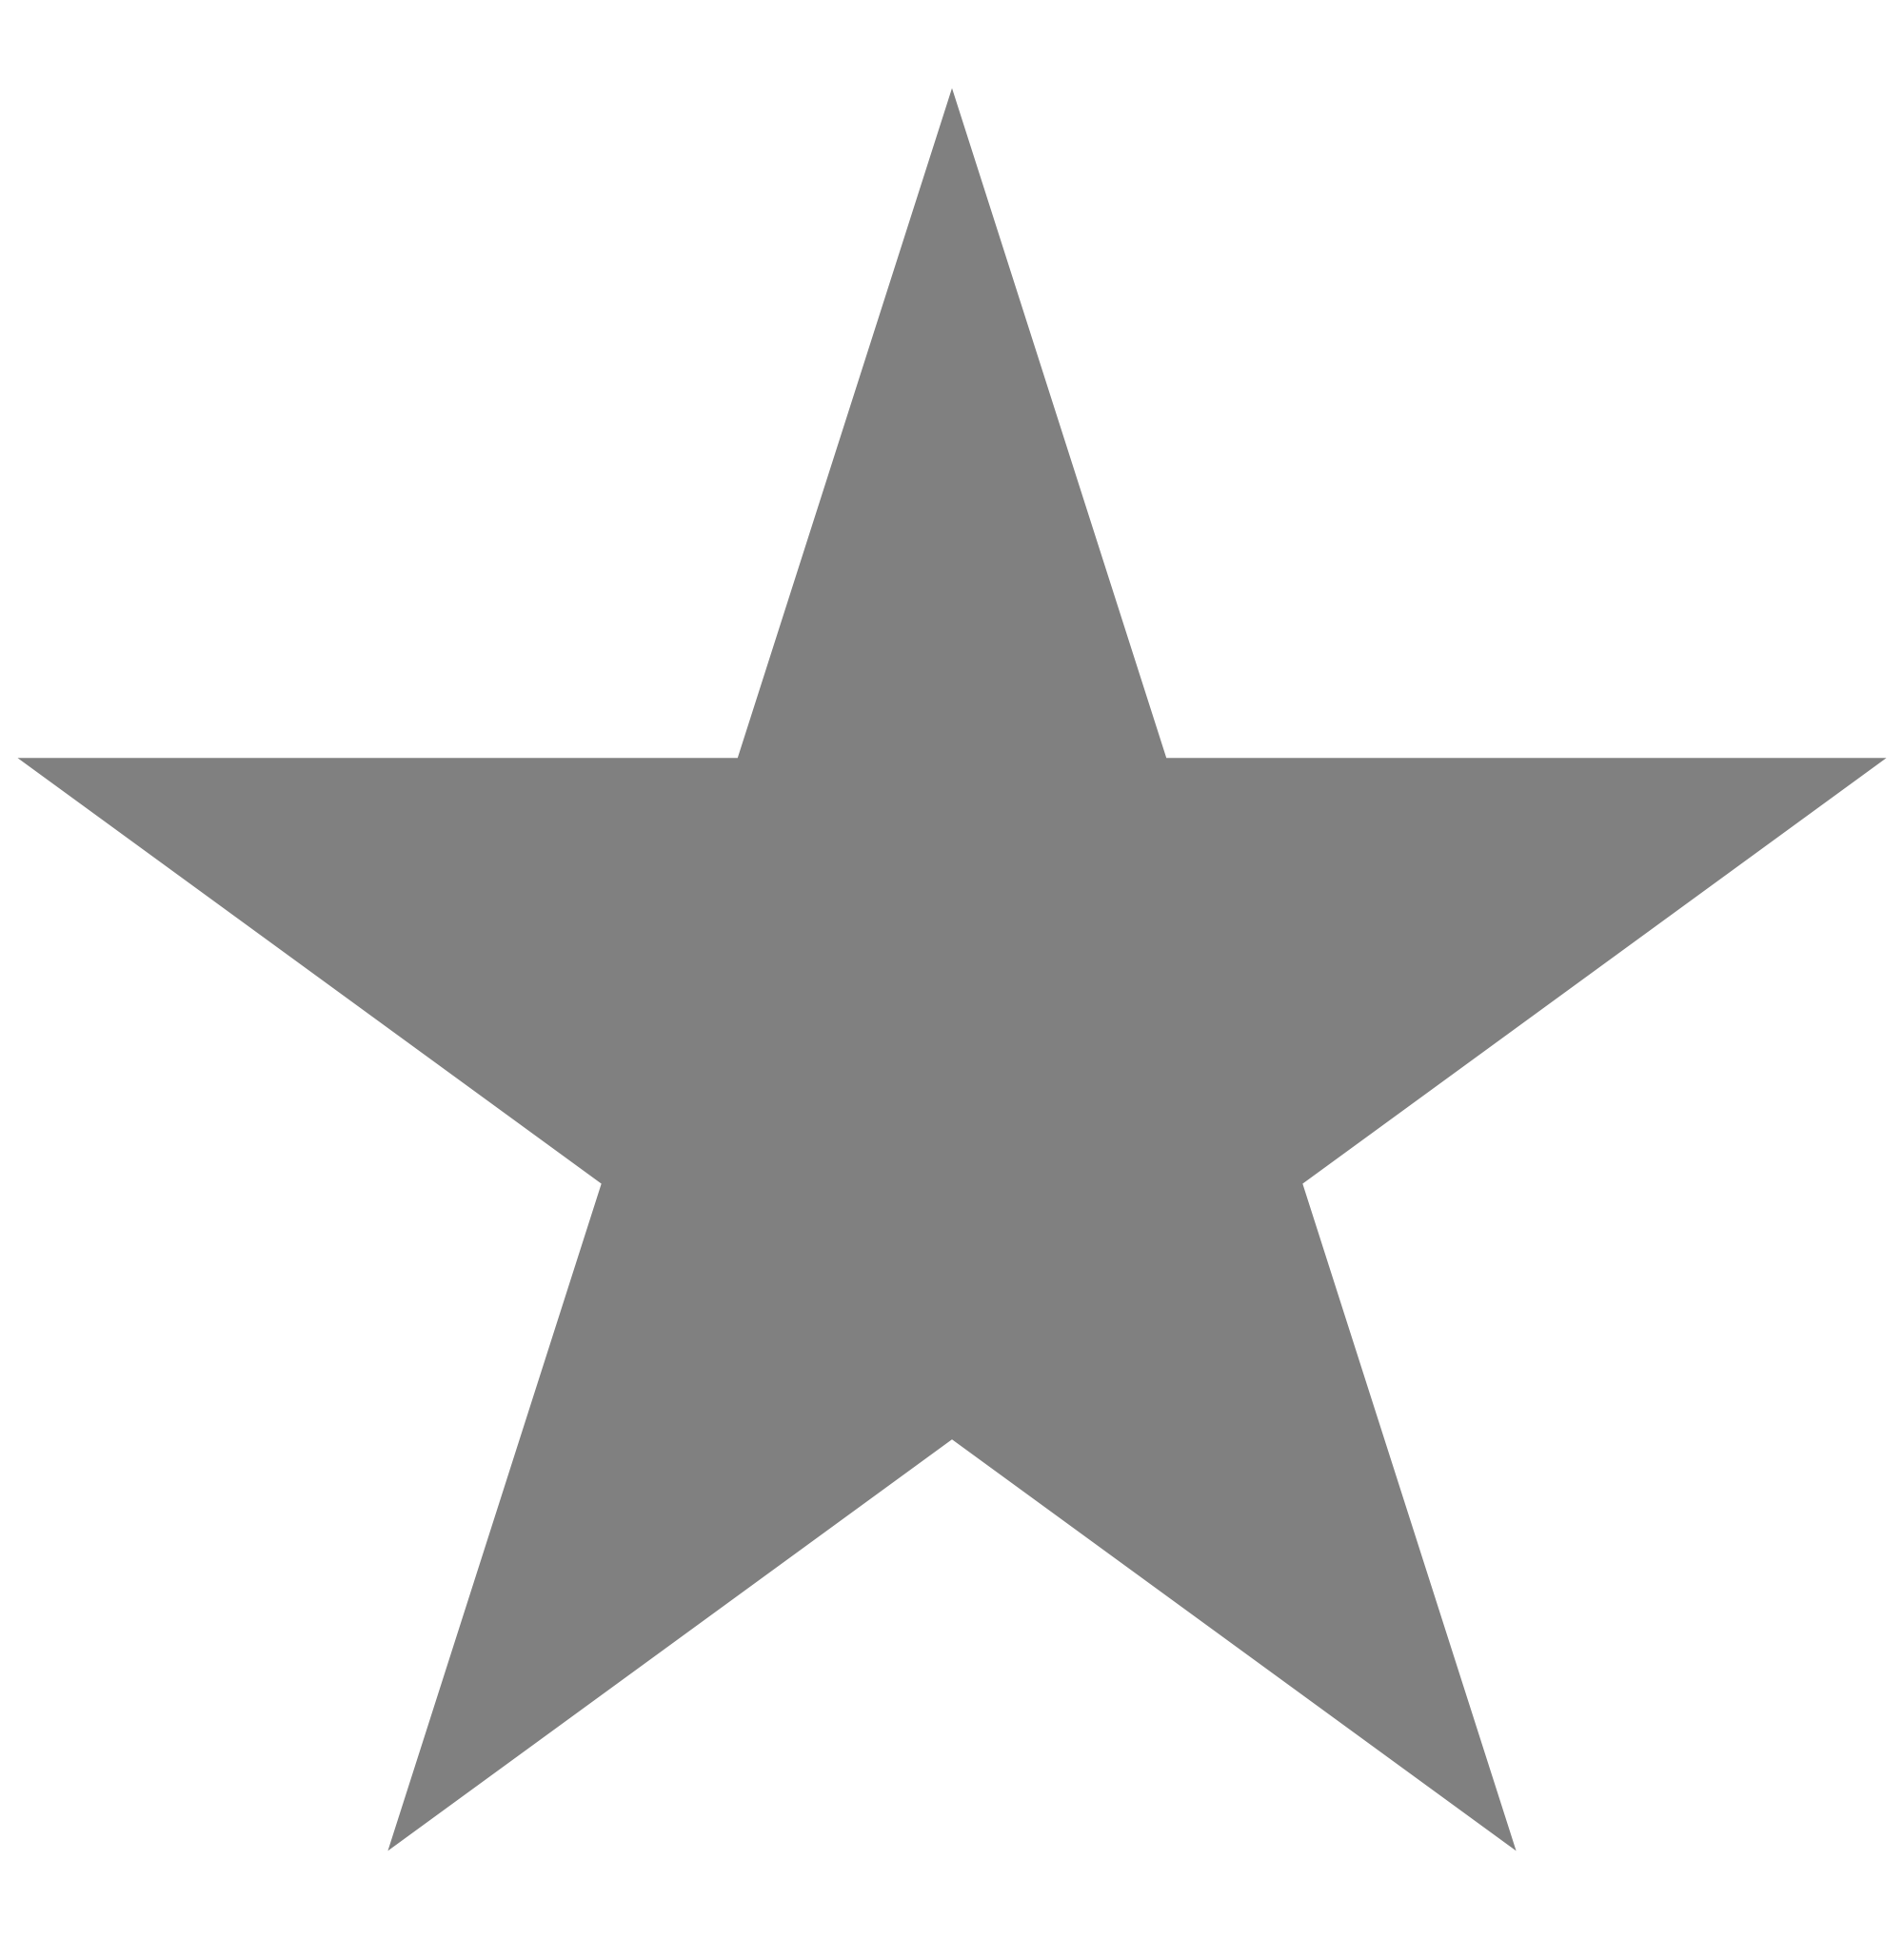 Star_empty.png